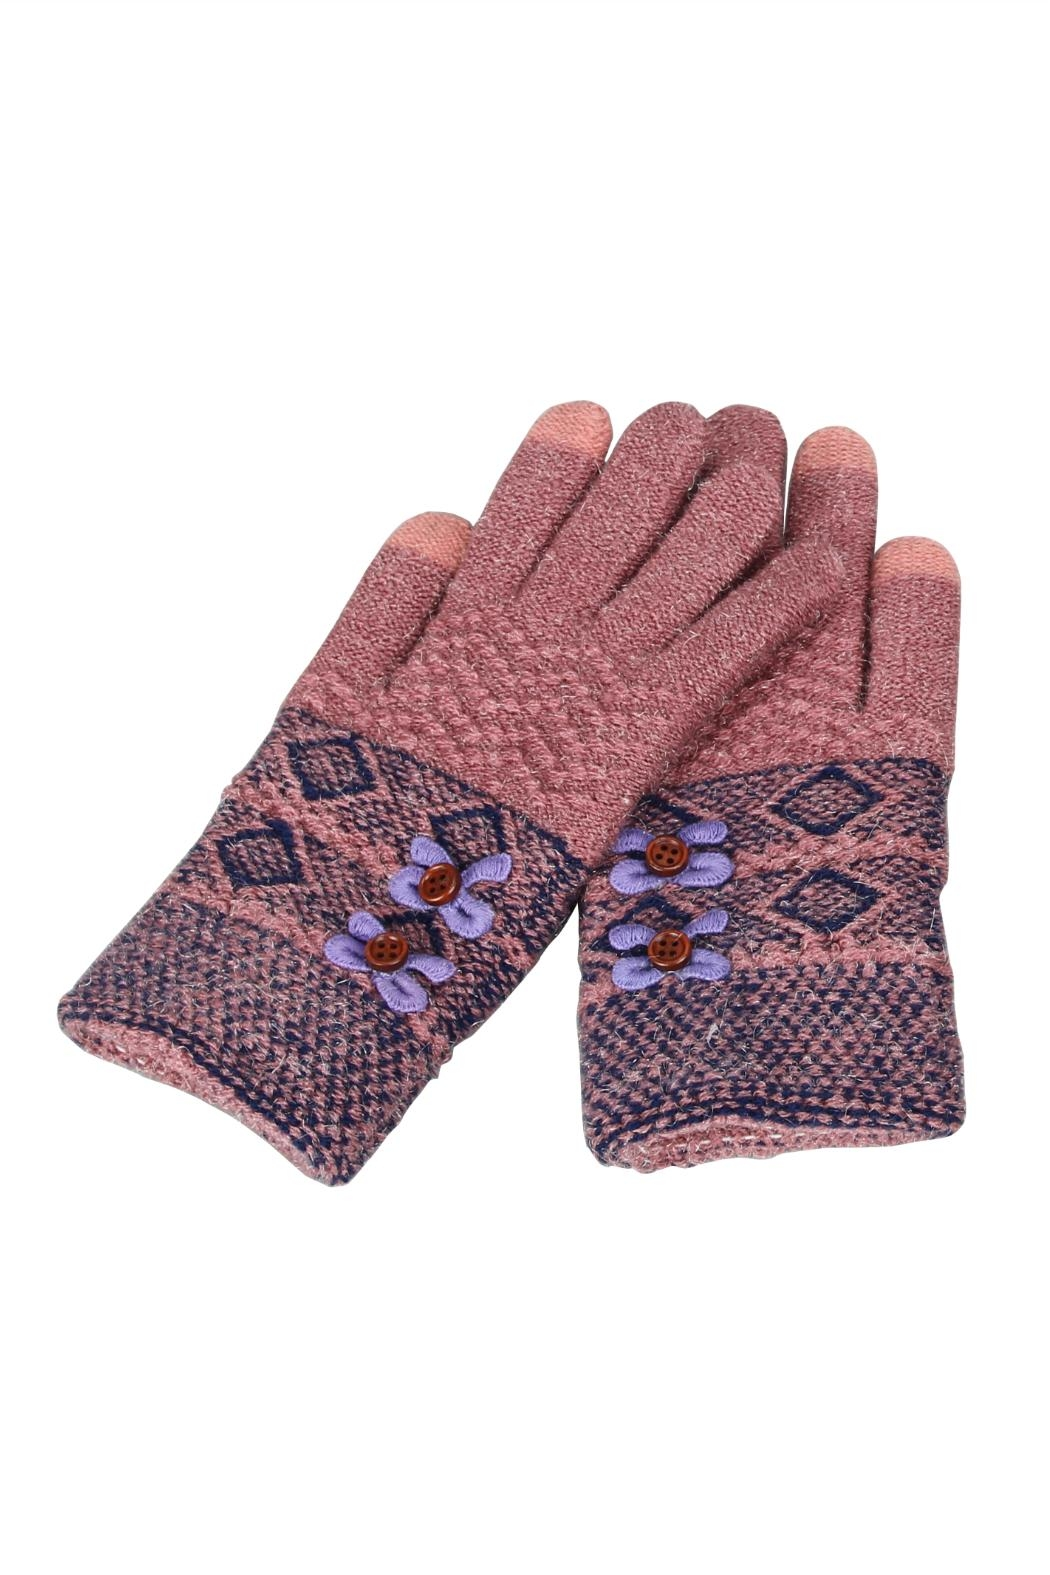 Victoria Leland Designs Knit Texting Gloves - Front Cropped Image